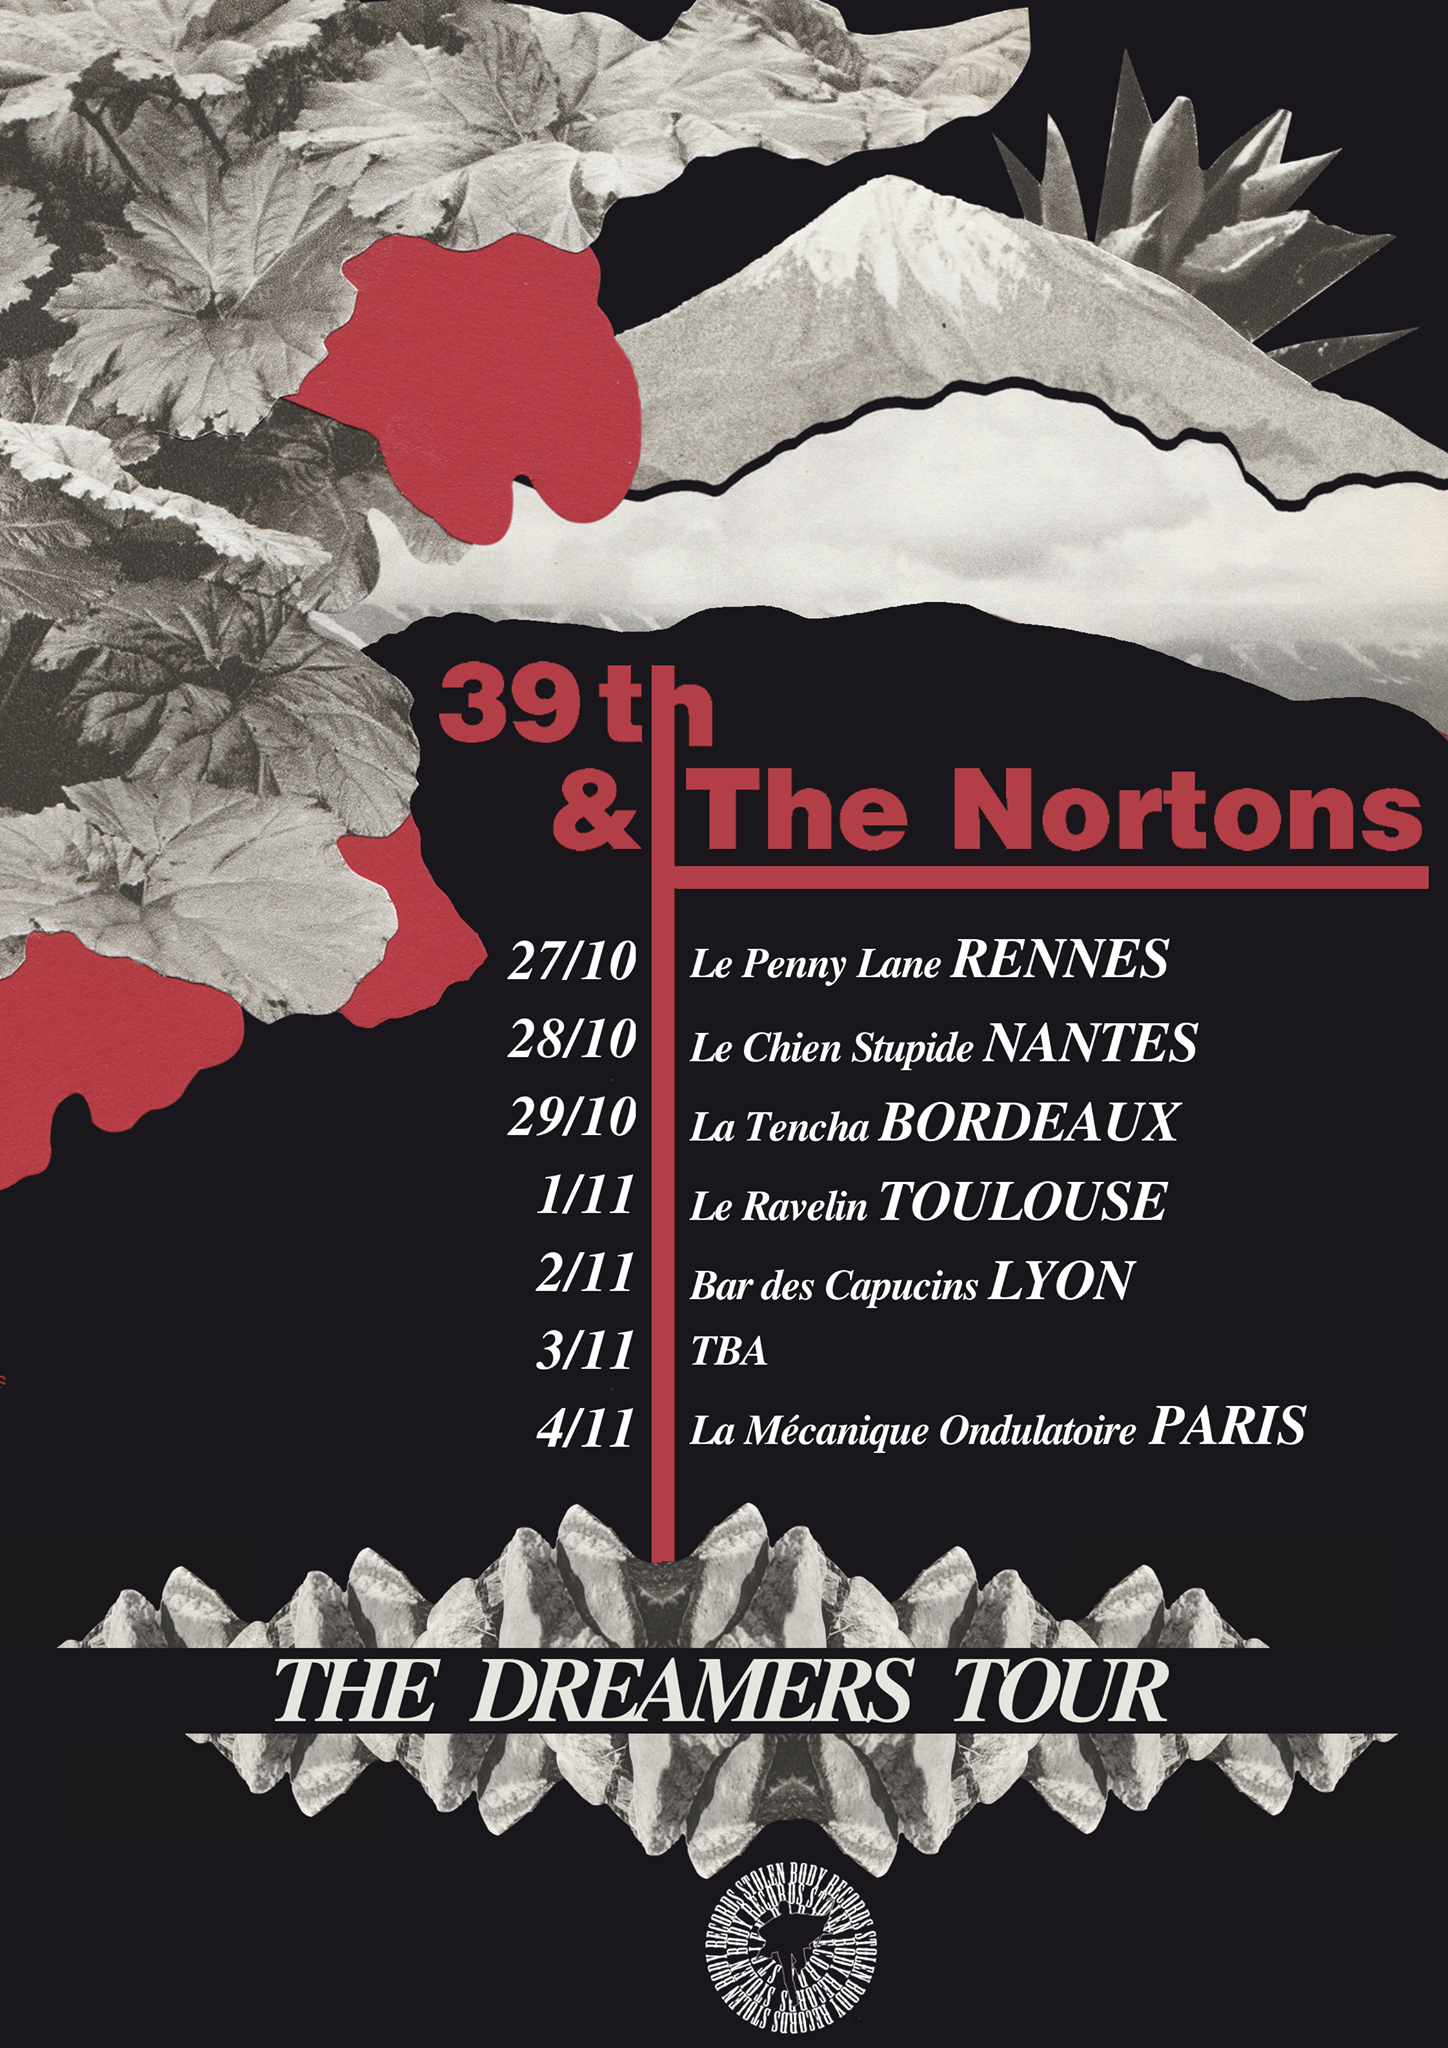 39th and the Nortons - tour poster